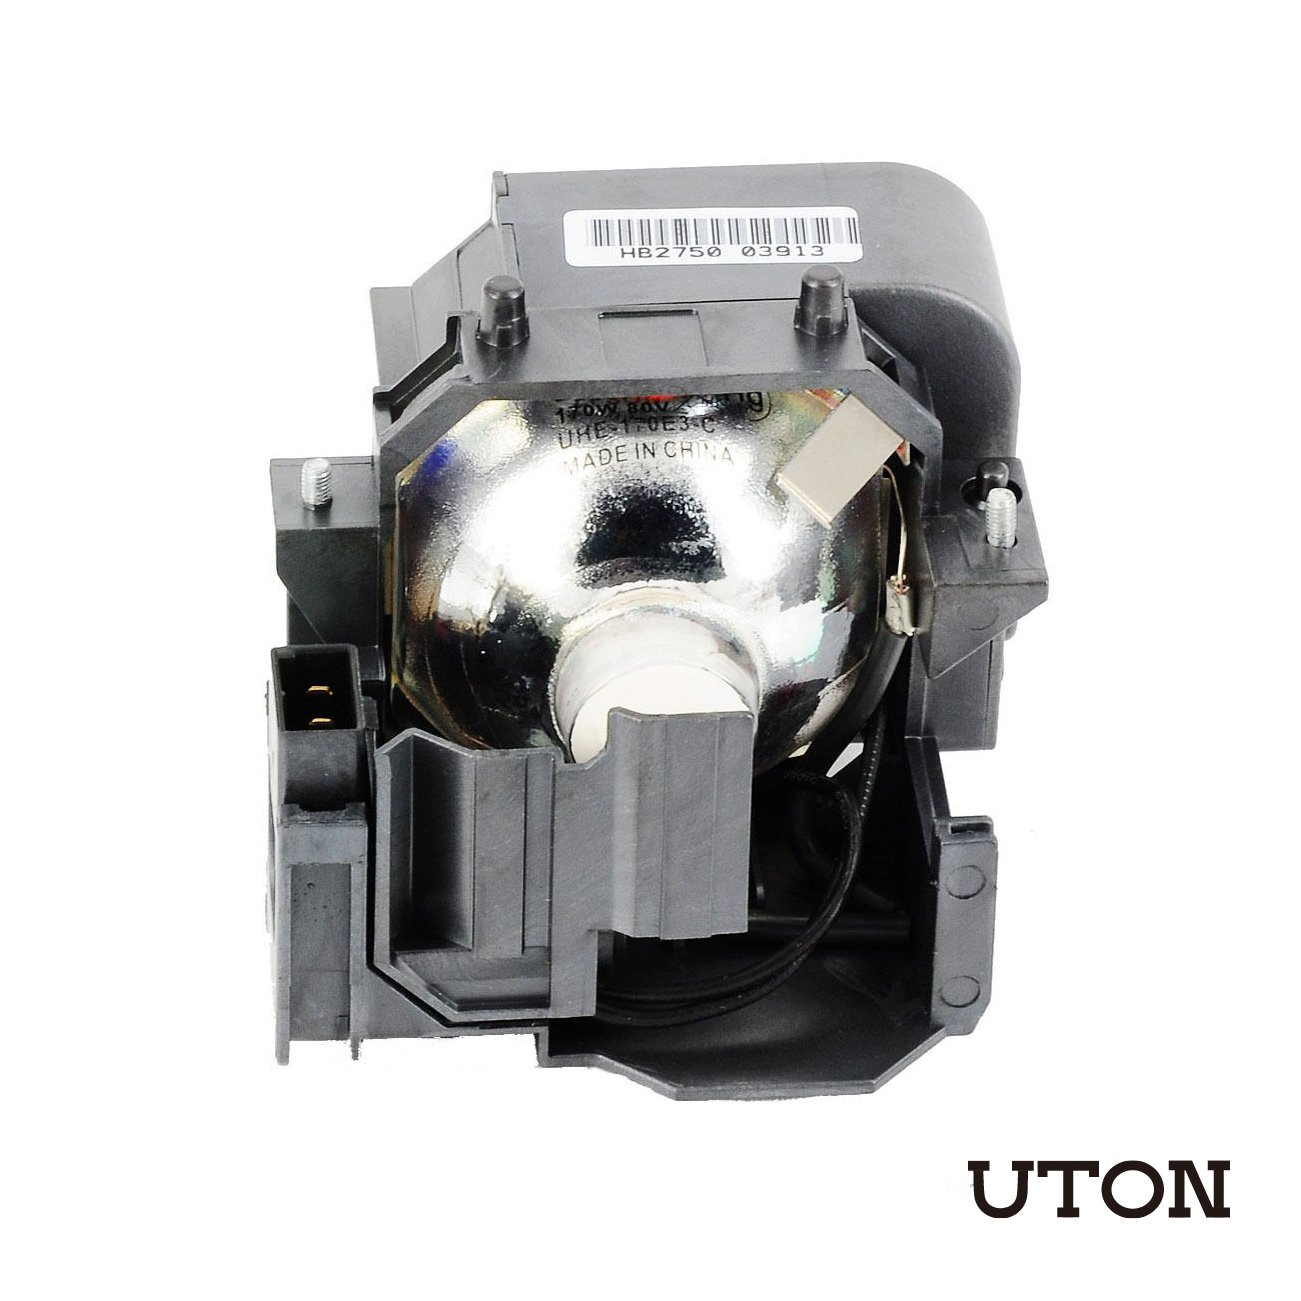 For ELPLP50 Replacement Projector Lamp With Housing for Epson Projector(Uton)